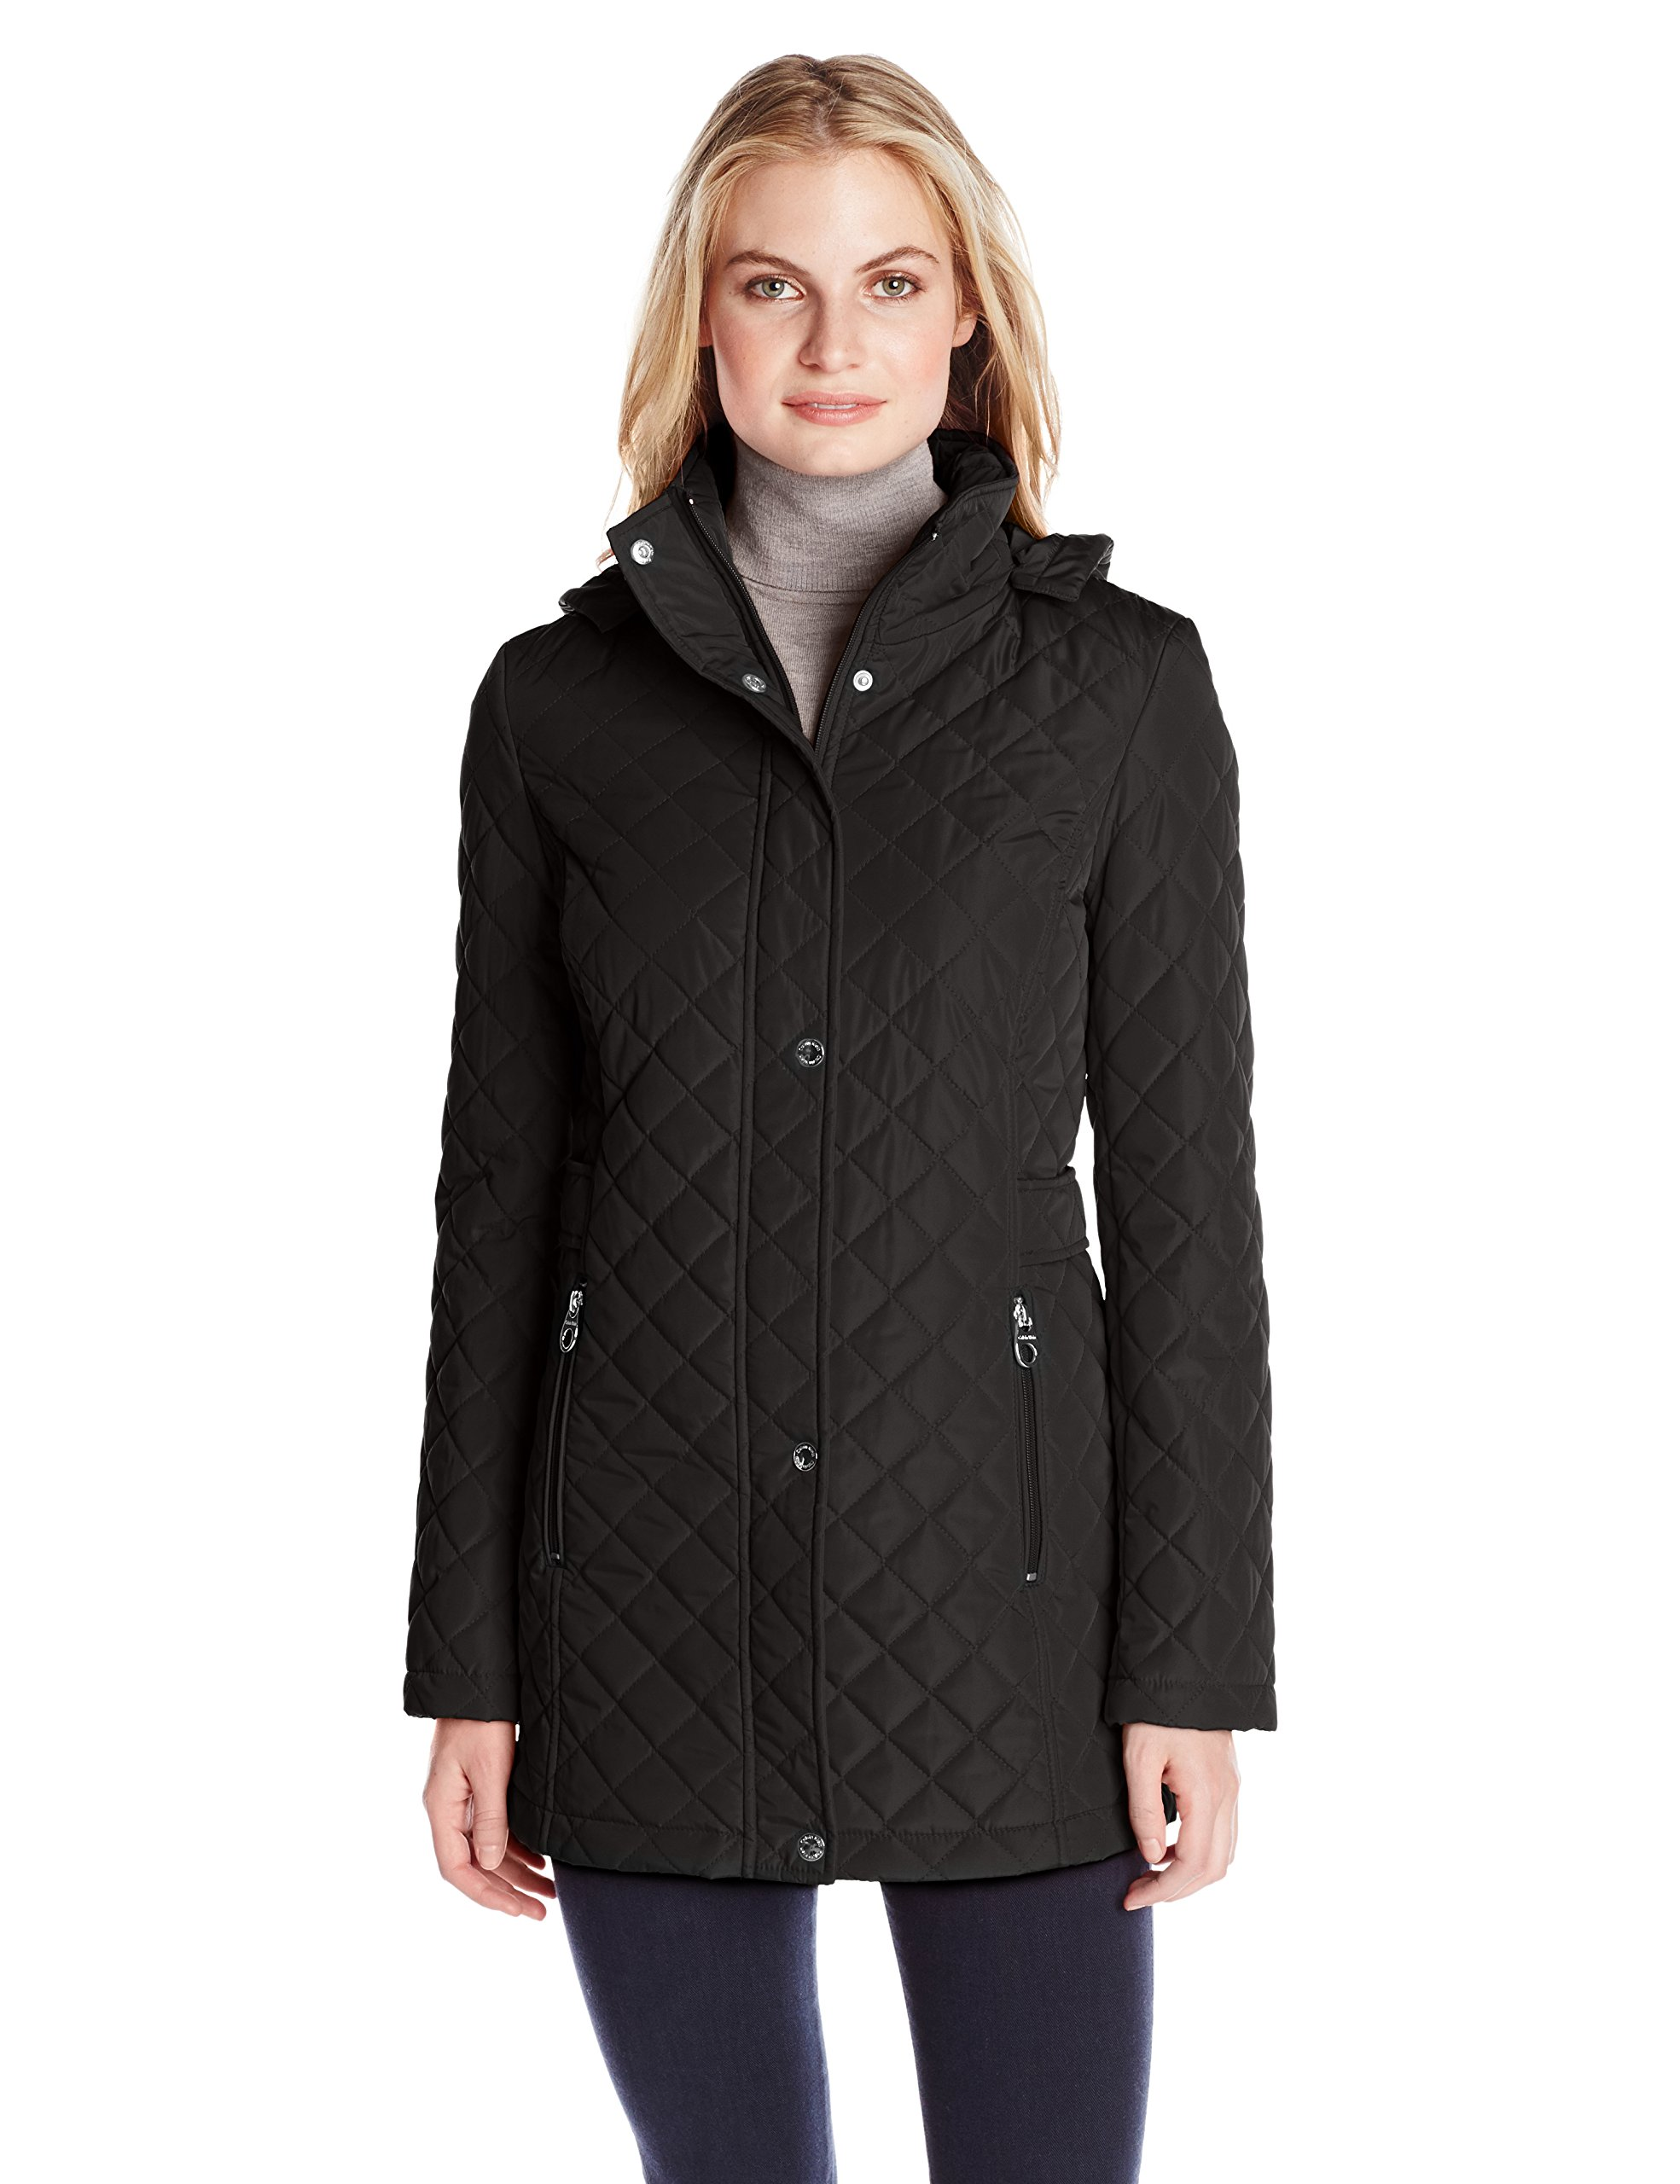 Calvin Klein Women's Classic Quilted Jacket with Side Tabs, Black, X-Large